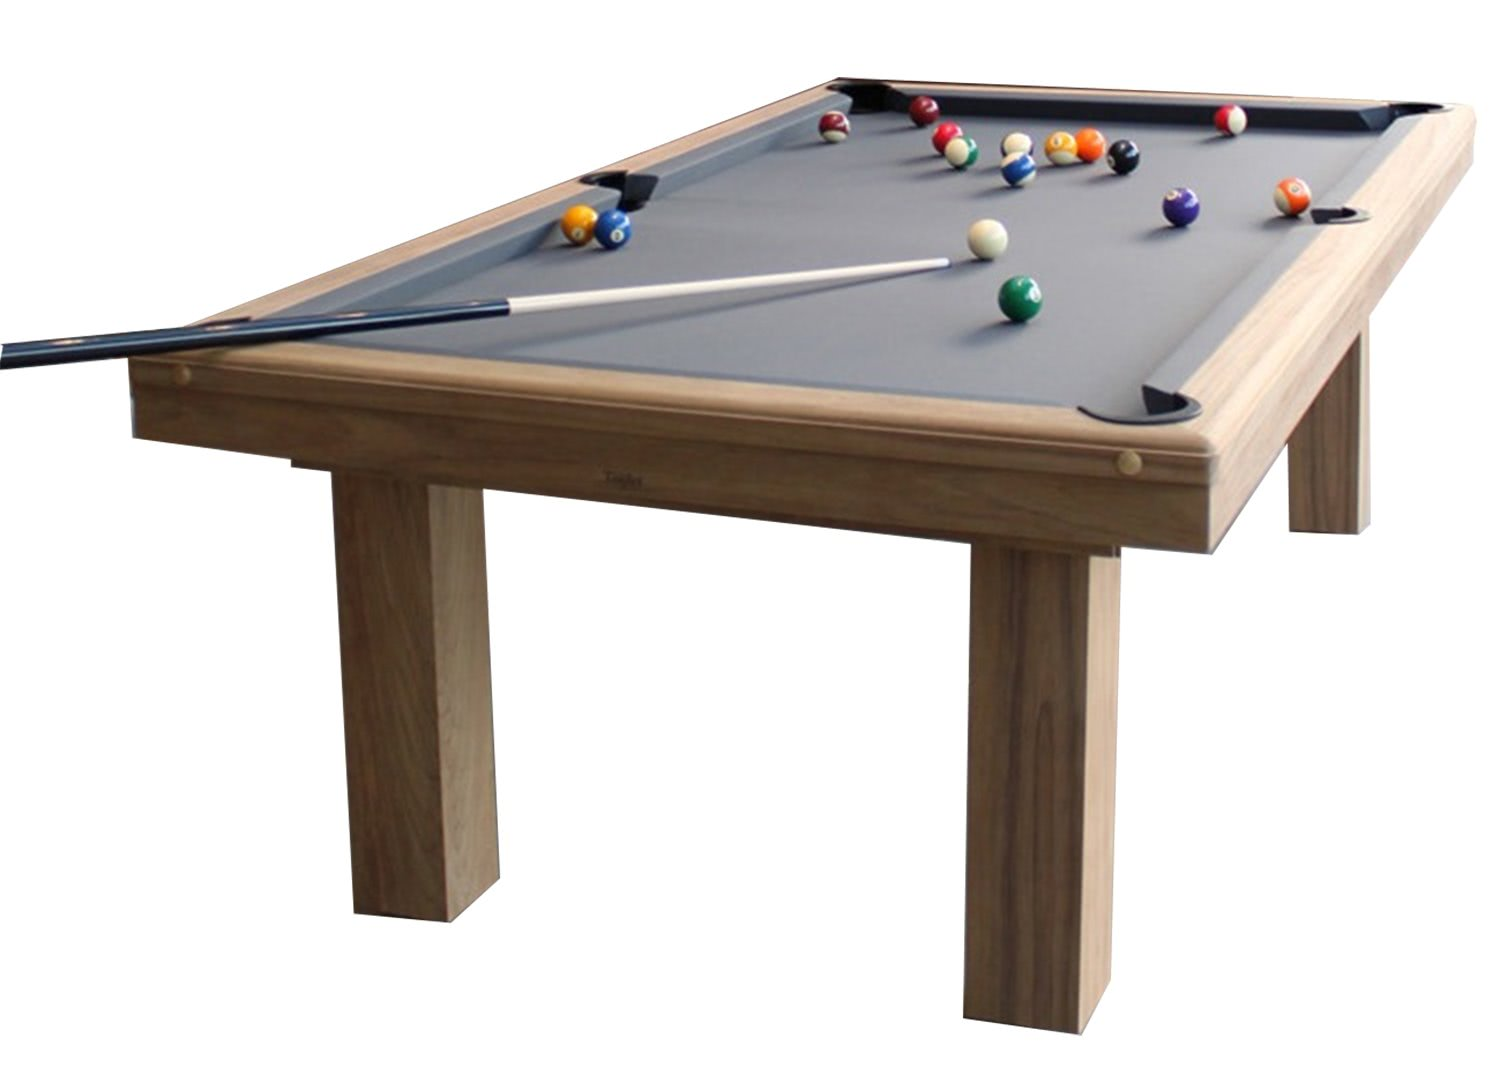 Billard toulet outdoor teck pool table 6 ft 7 ft 8 ft - Photos of pool tables ...